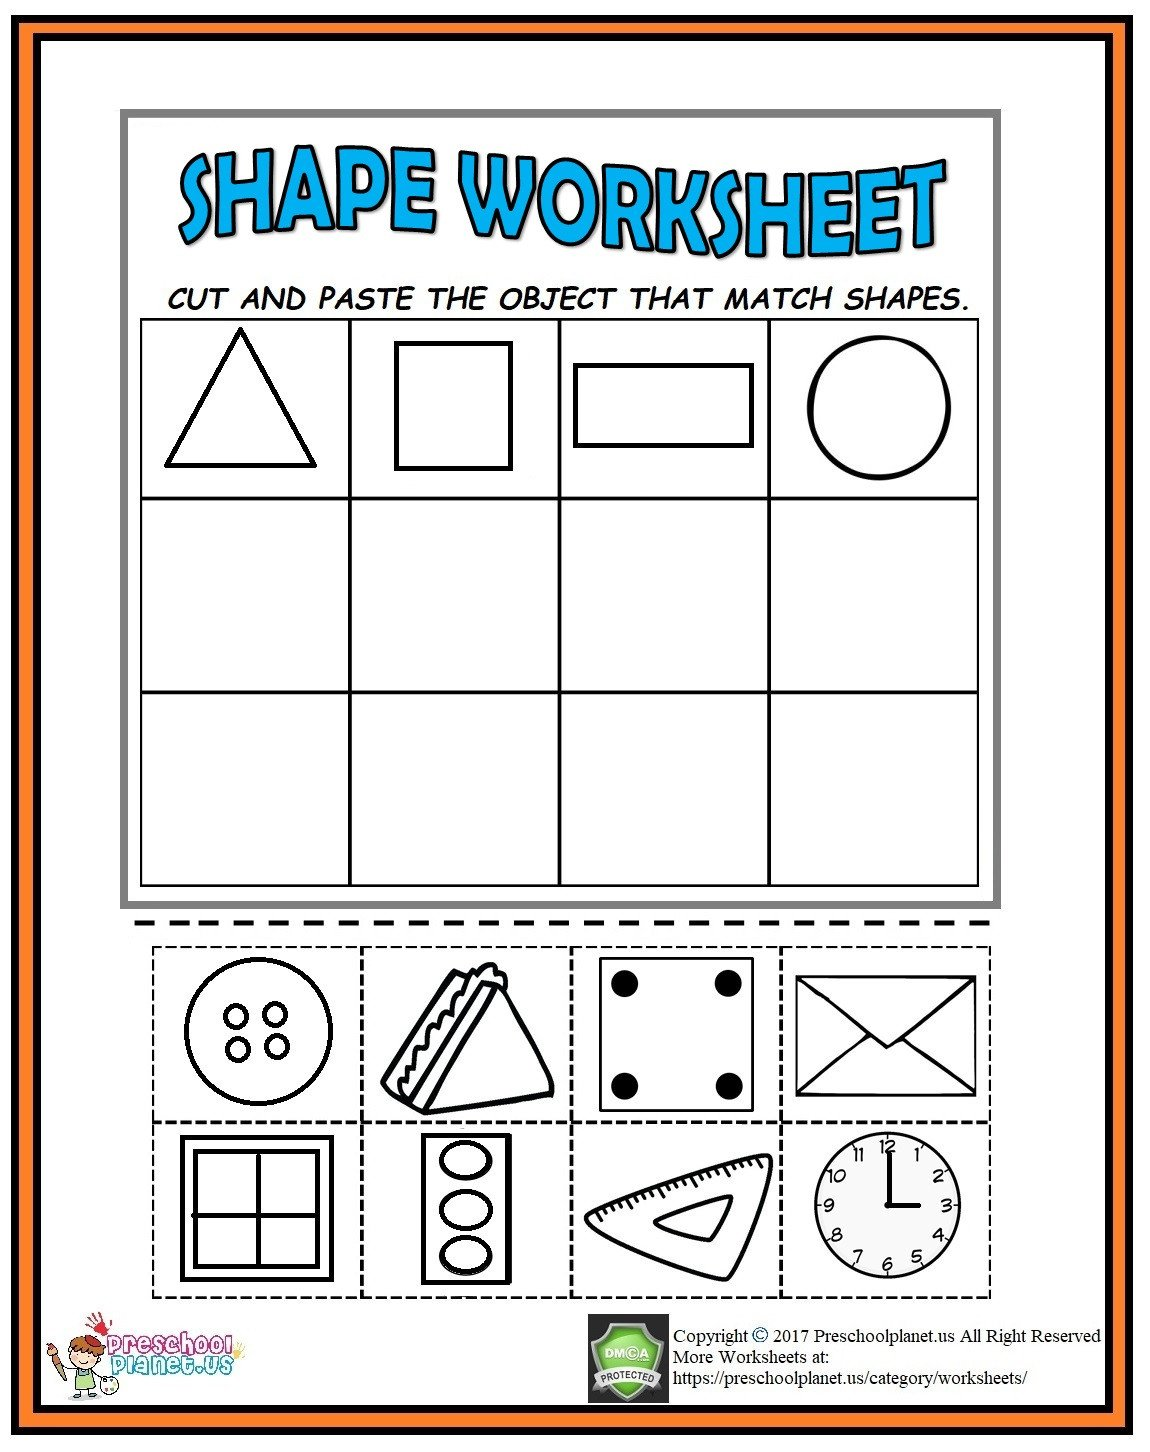 Kindergarten Worksheets Cut and Paste Cut and Paste Shape Worksheet for Kindergarten – Preschoolplanet